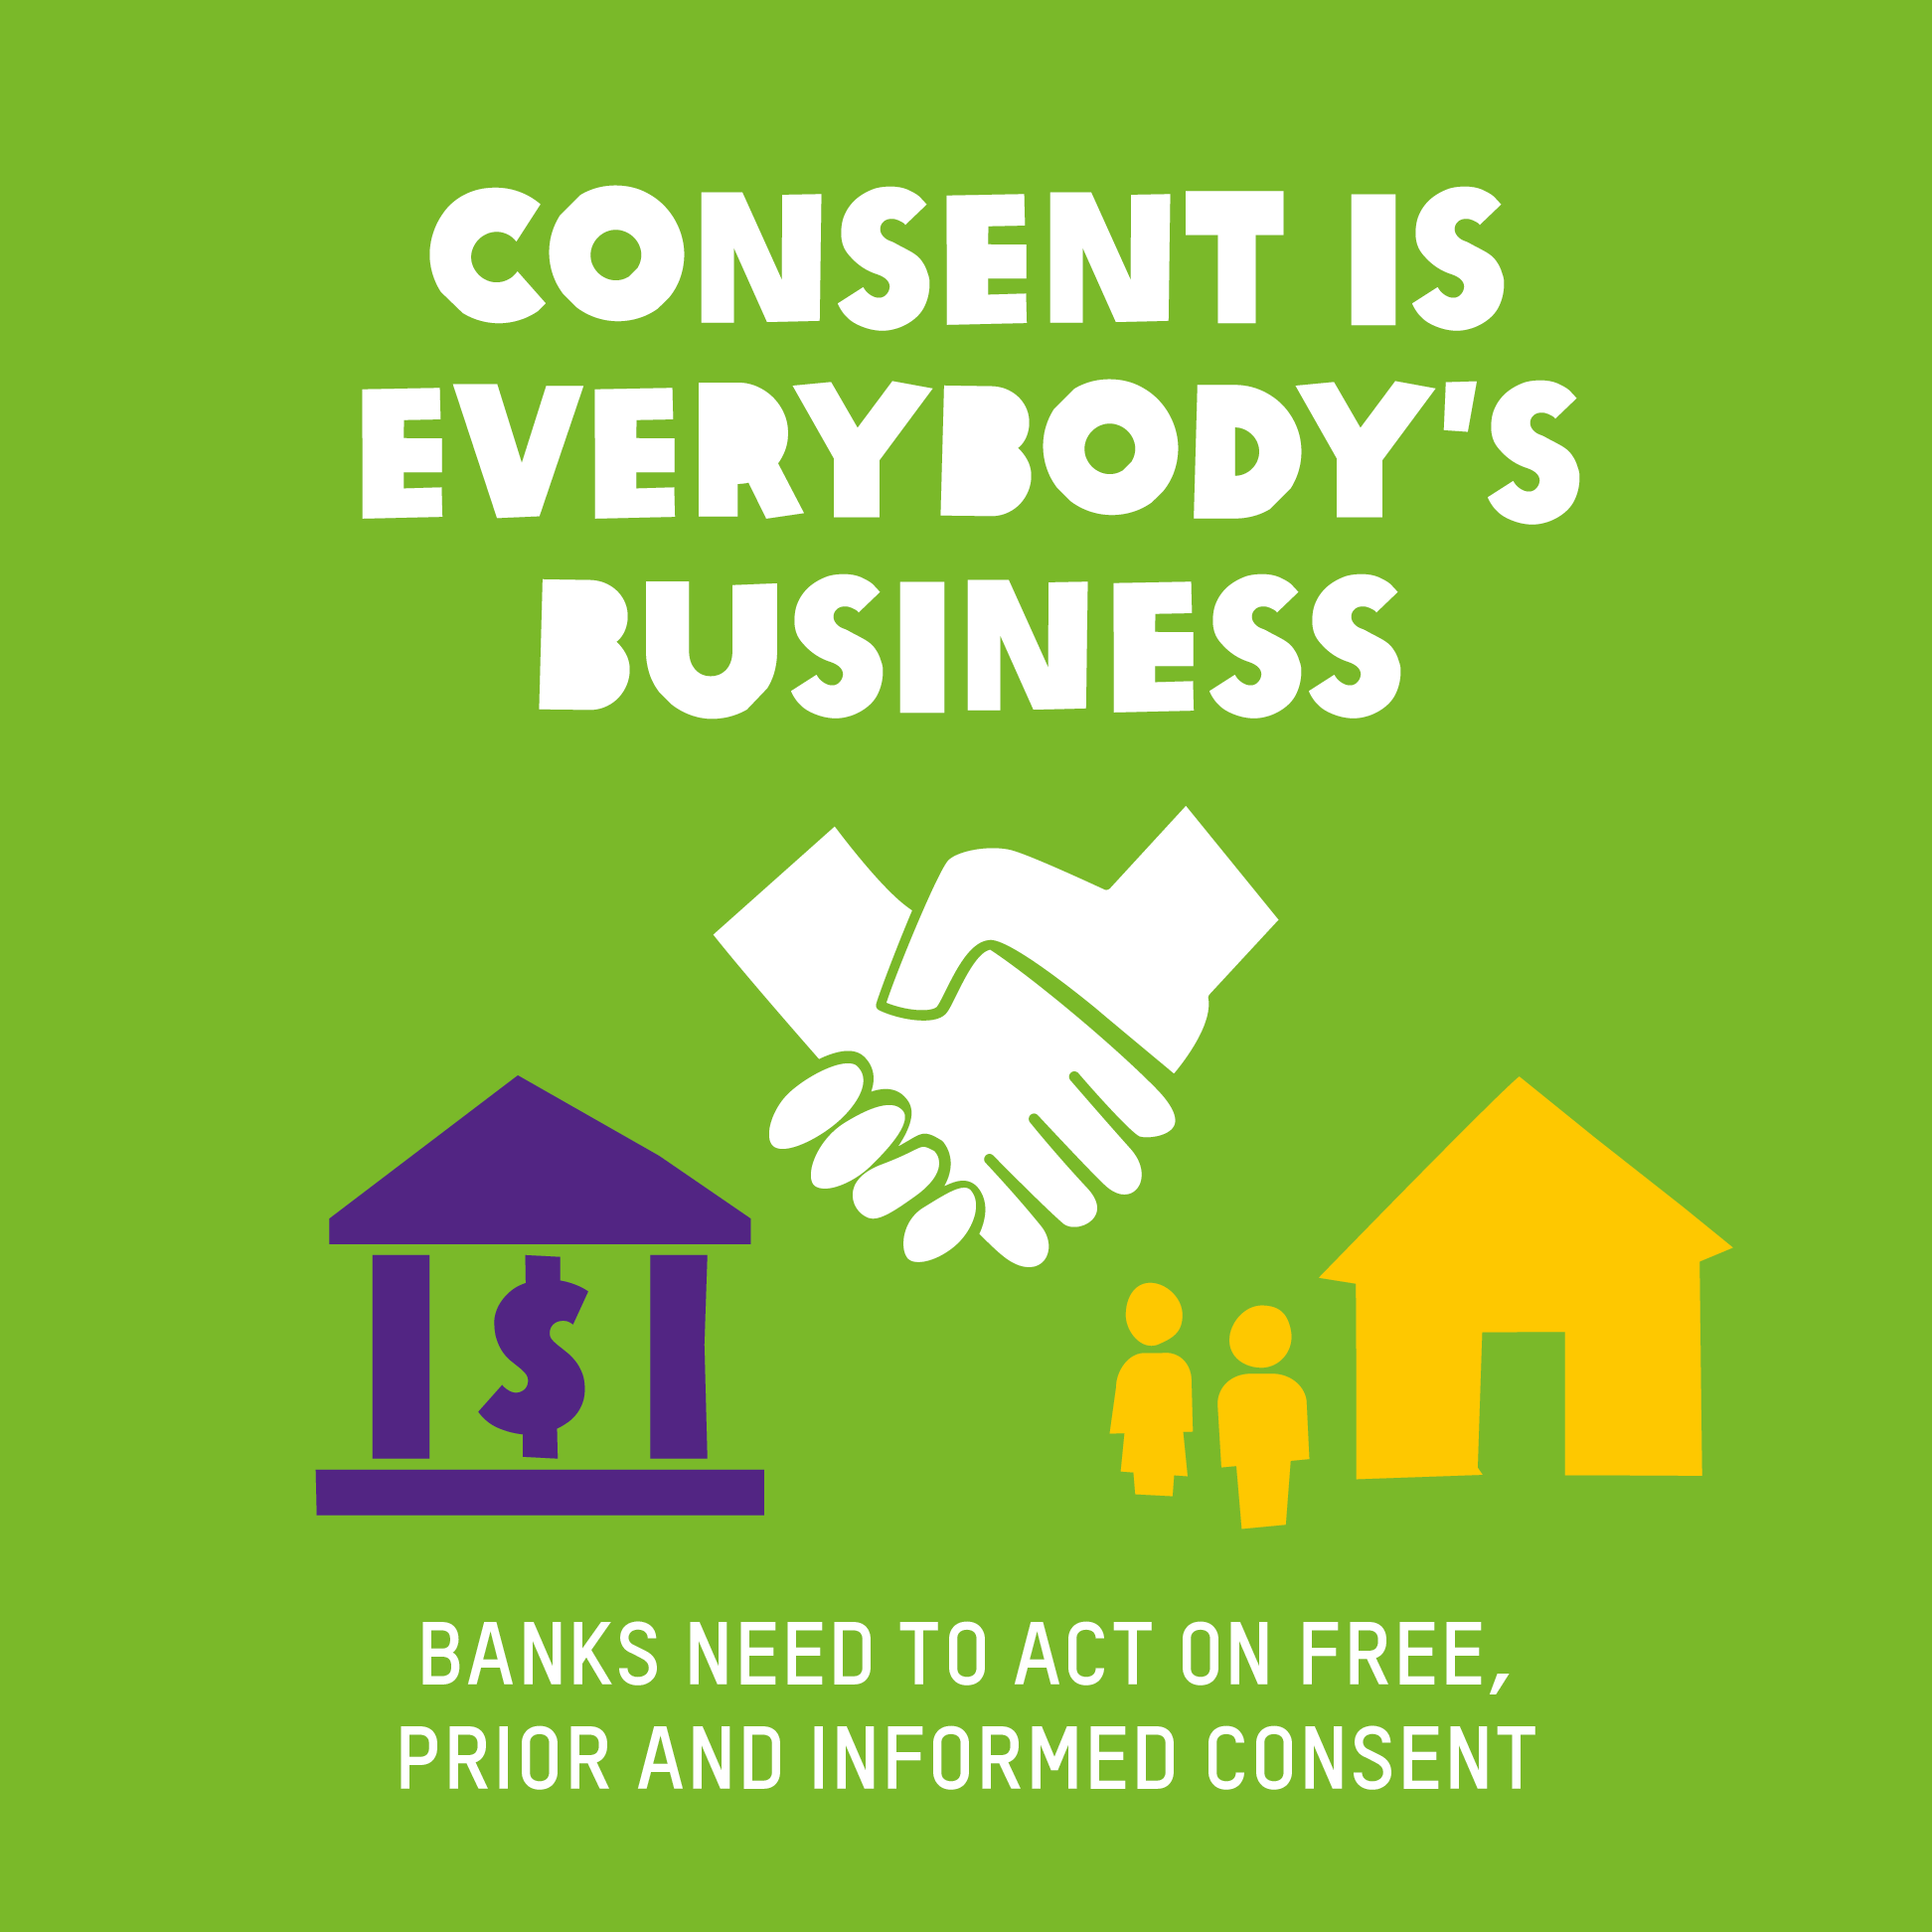 Consent is everybody's business